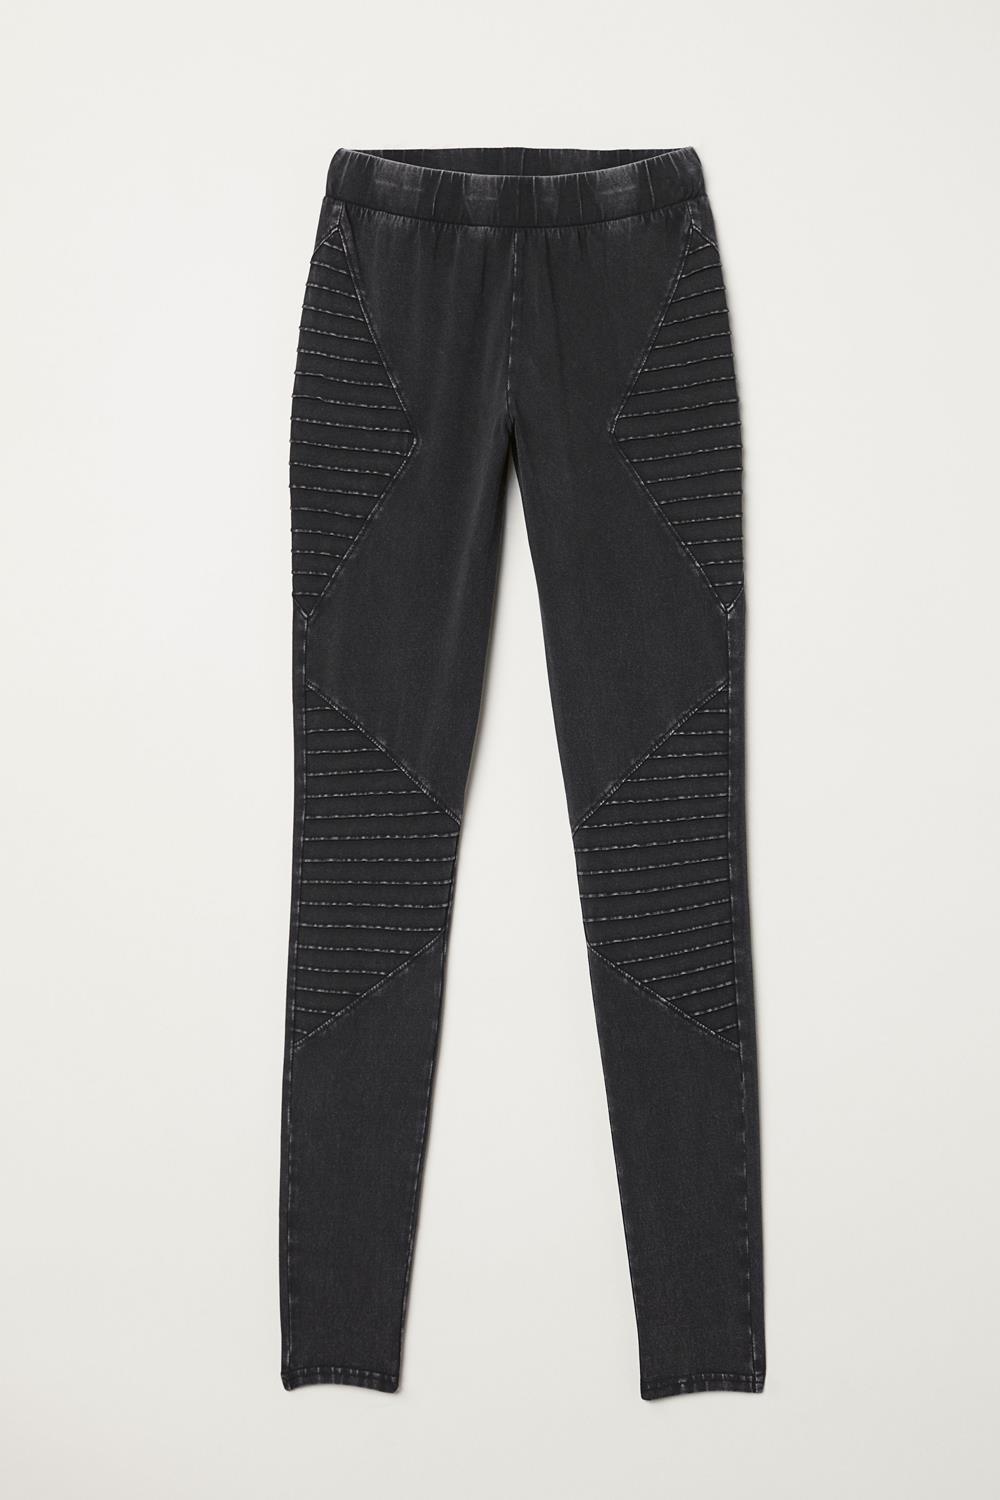 looks leggings calzedonia moteros. Moteros